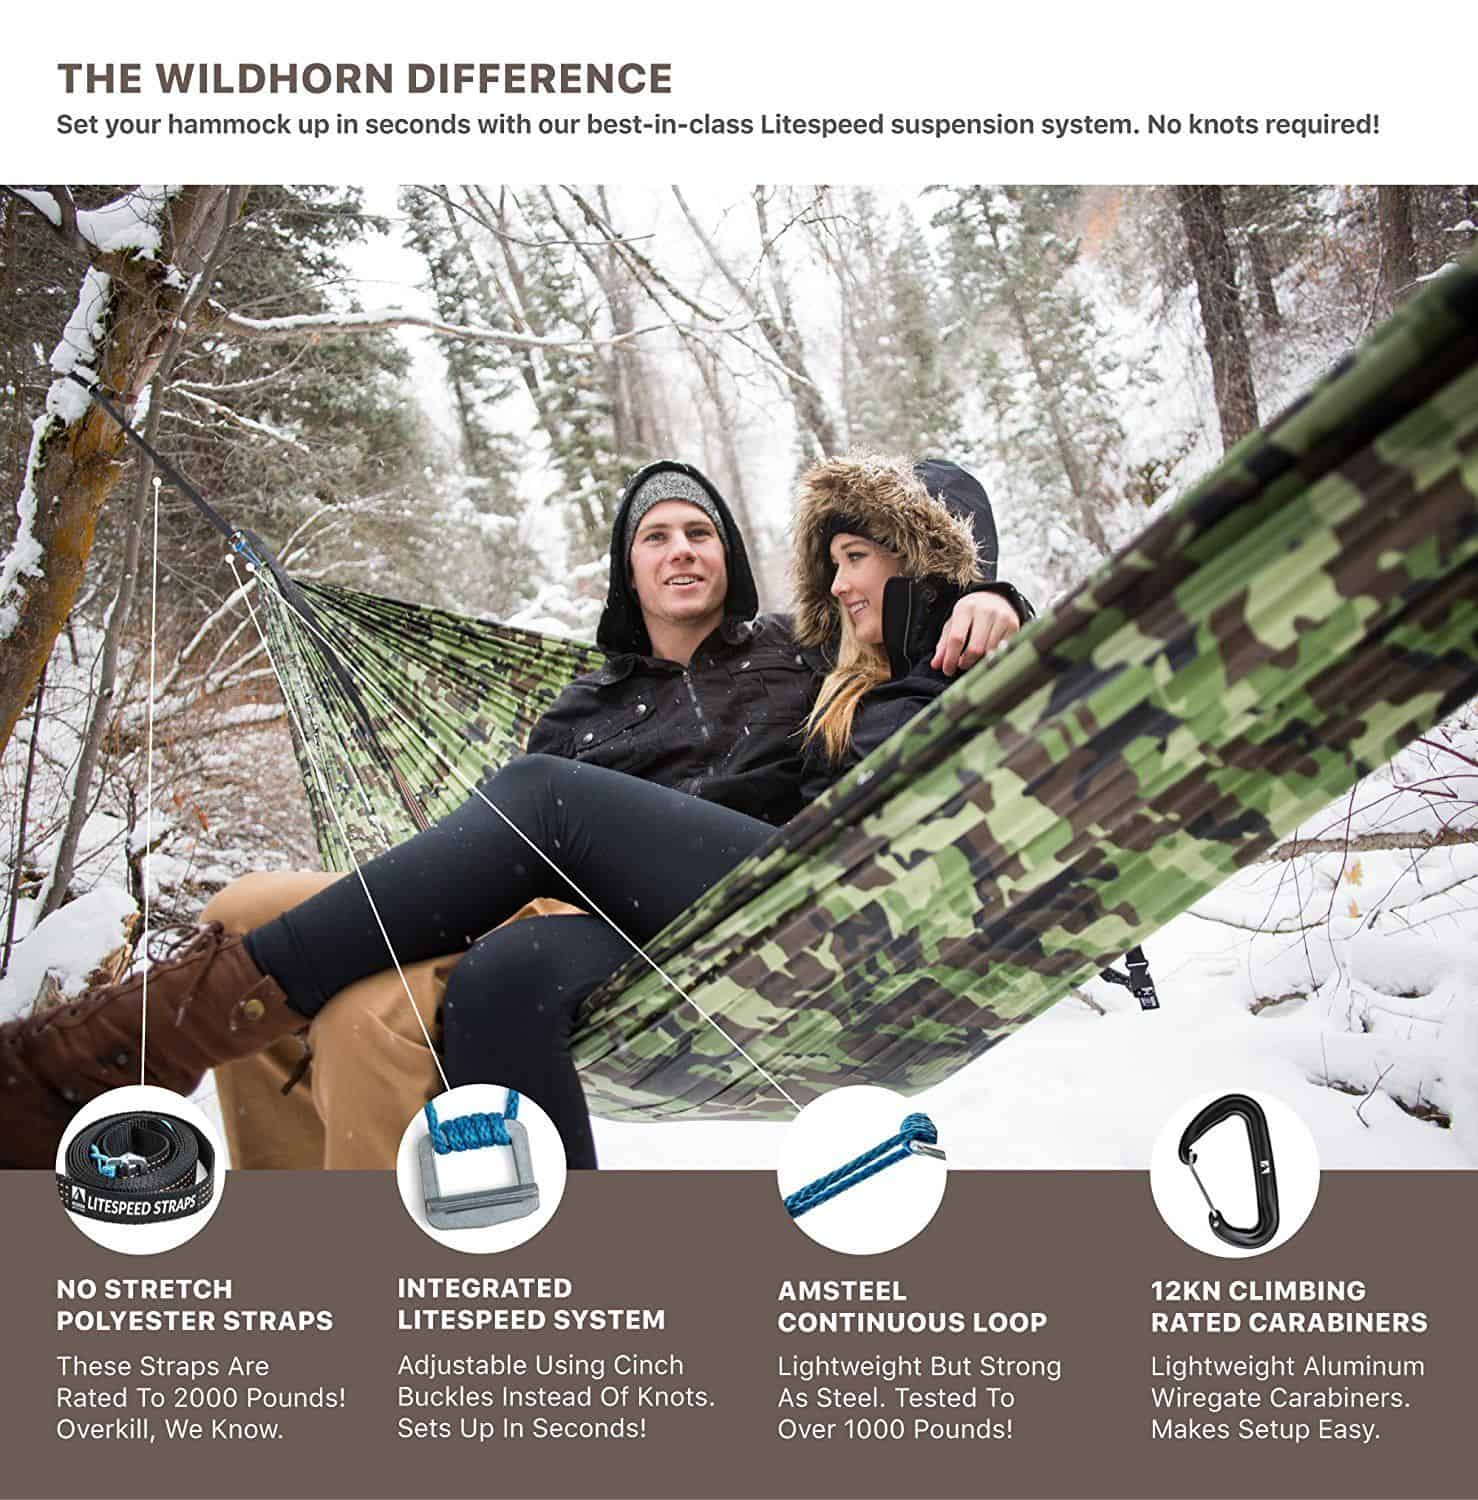 wildhorn outfitters outpost ii hammock double woodland camo best lightweight camping hiking hammock   wildhorn outfitters outpost  rh   watchyourselves